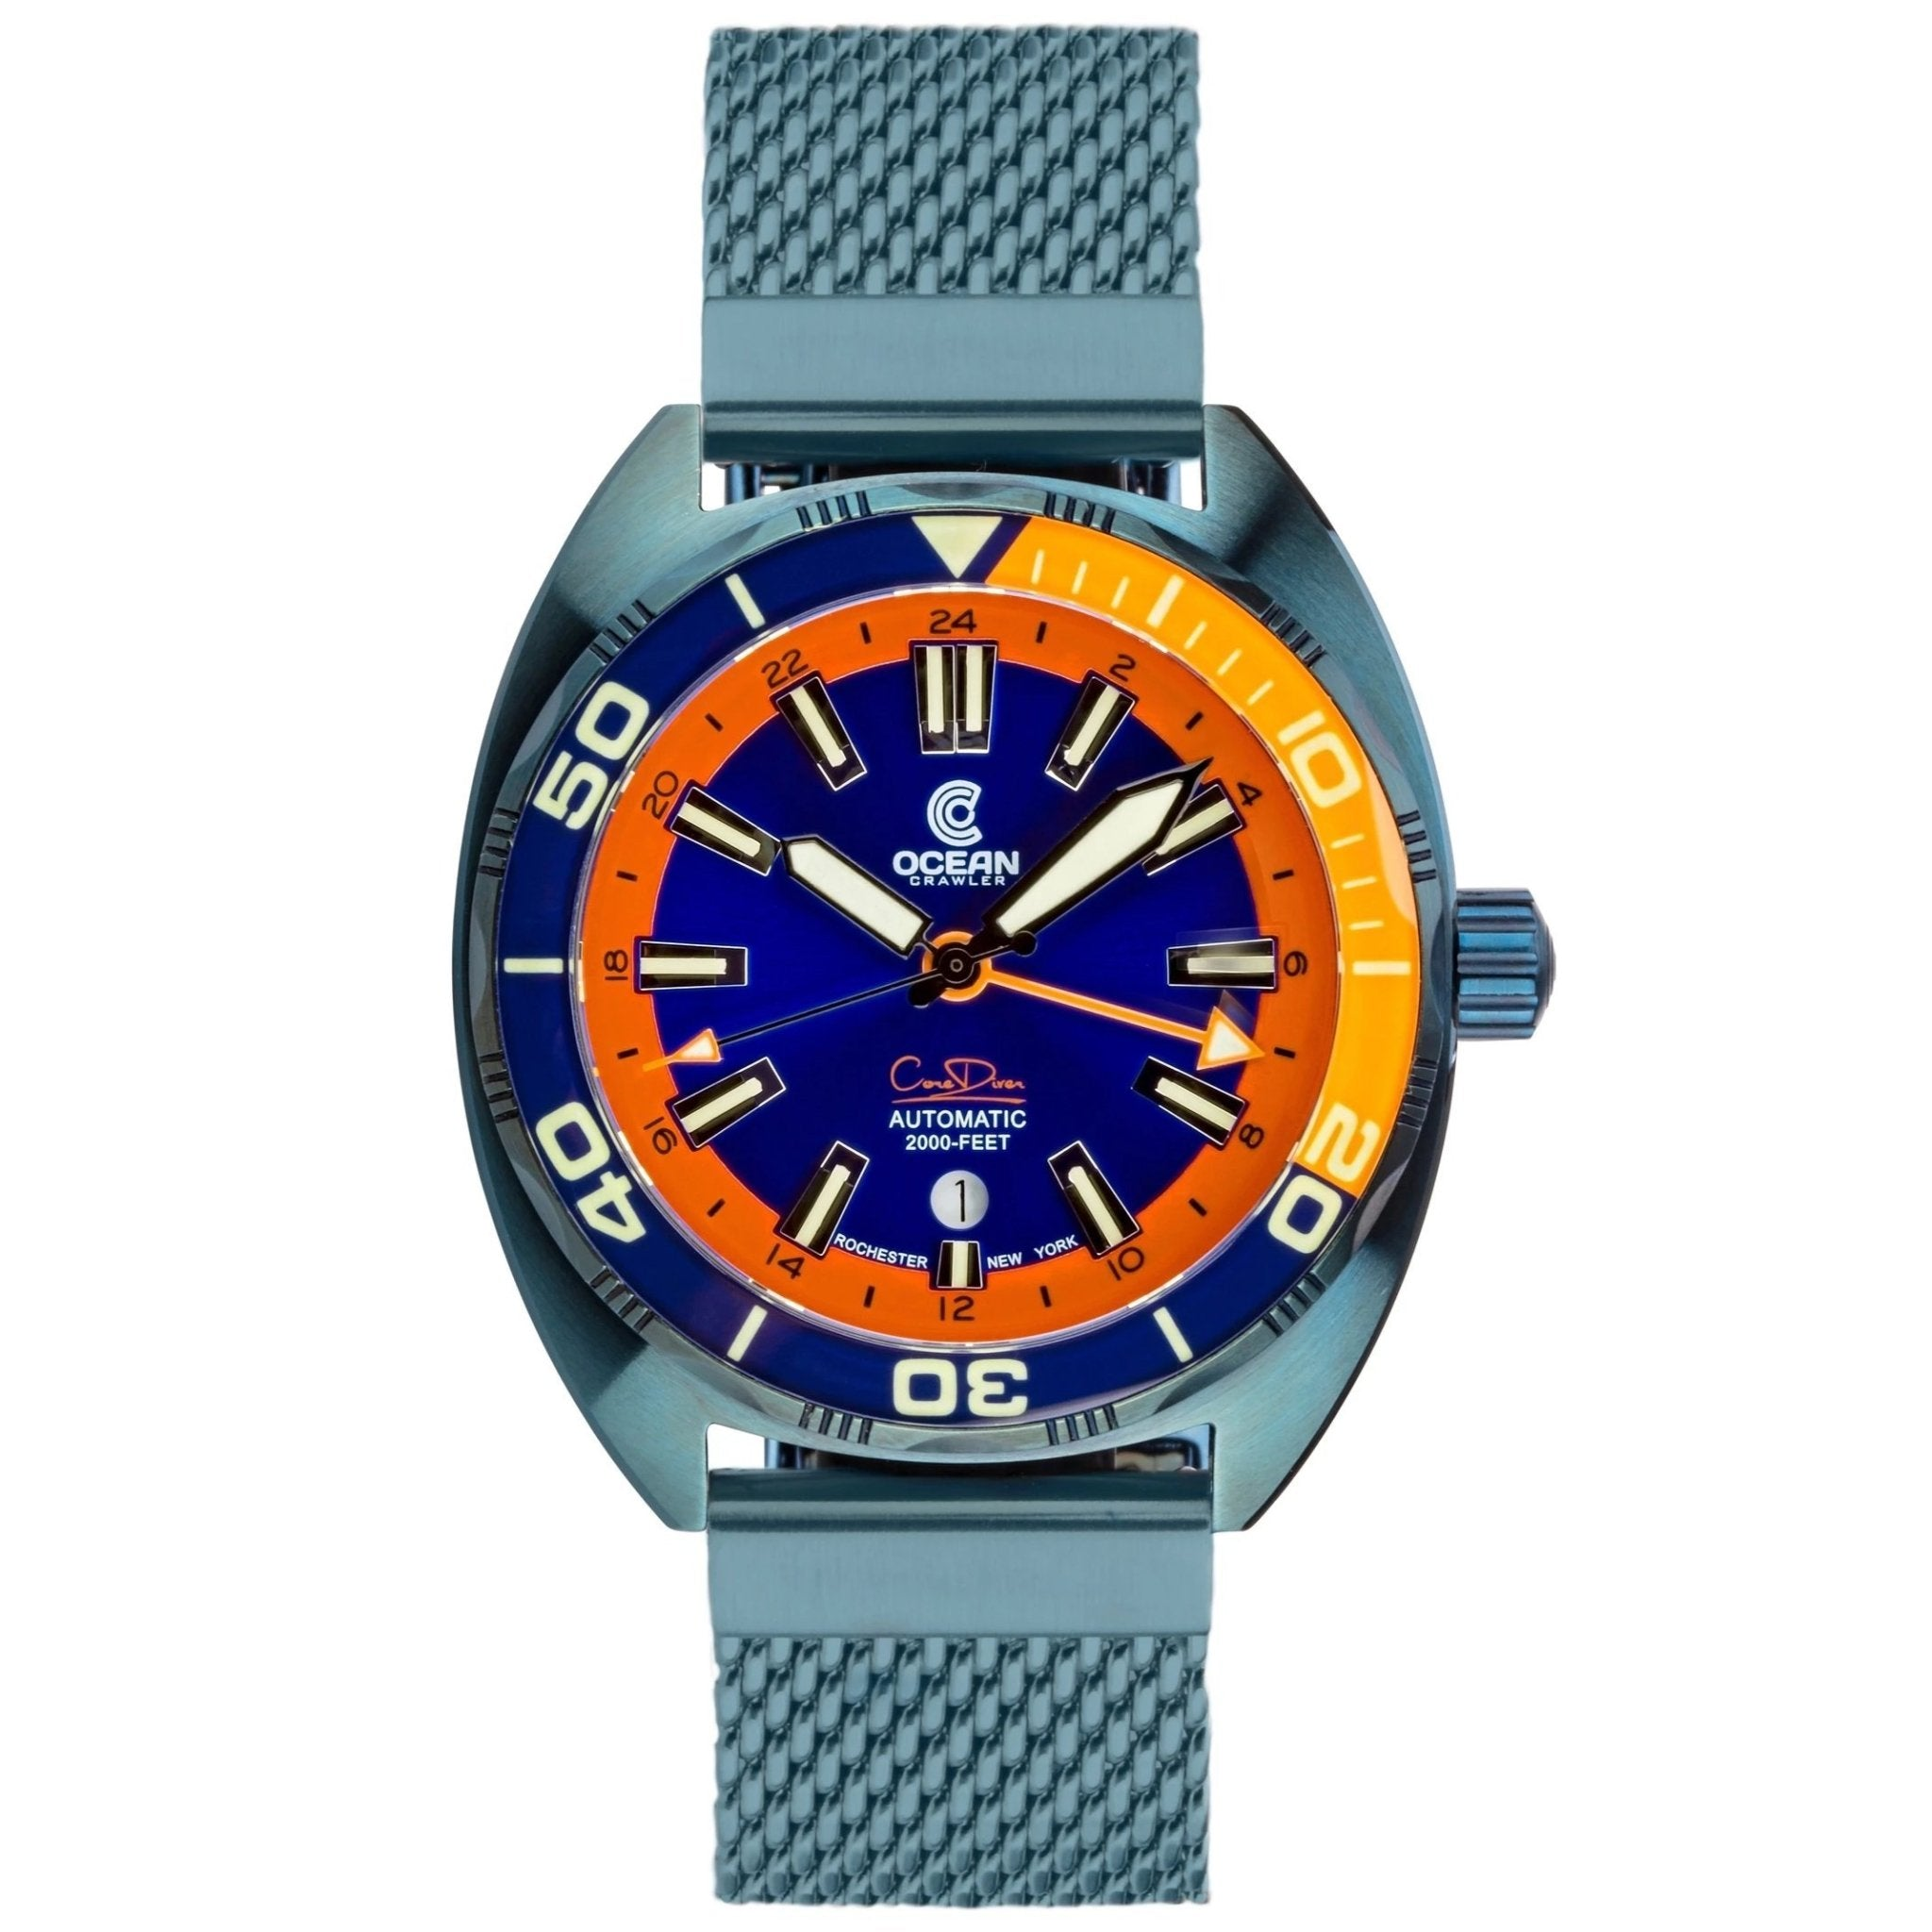 Ocean Crawler Core Diver GMT - Blue Steel - Ocean Crawler Watch Co.